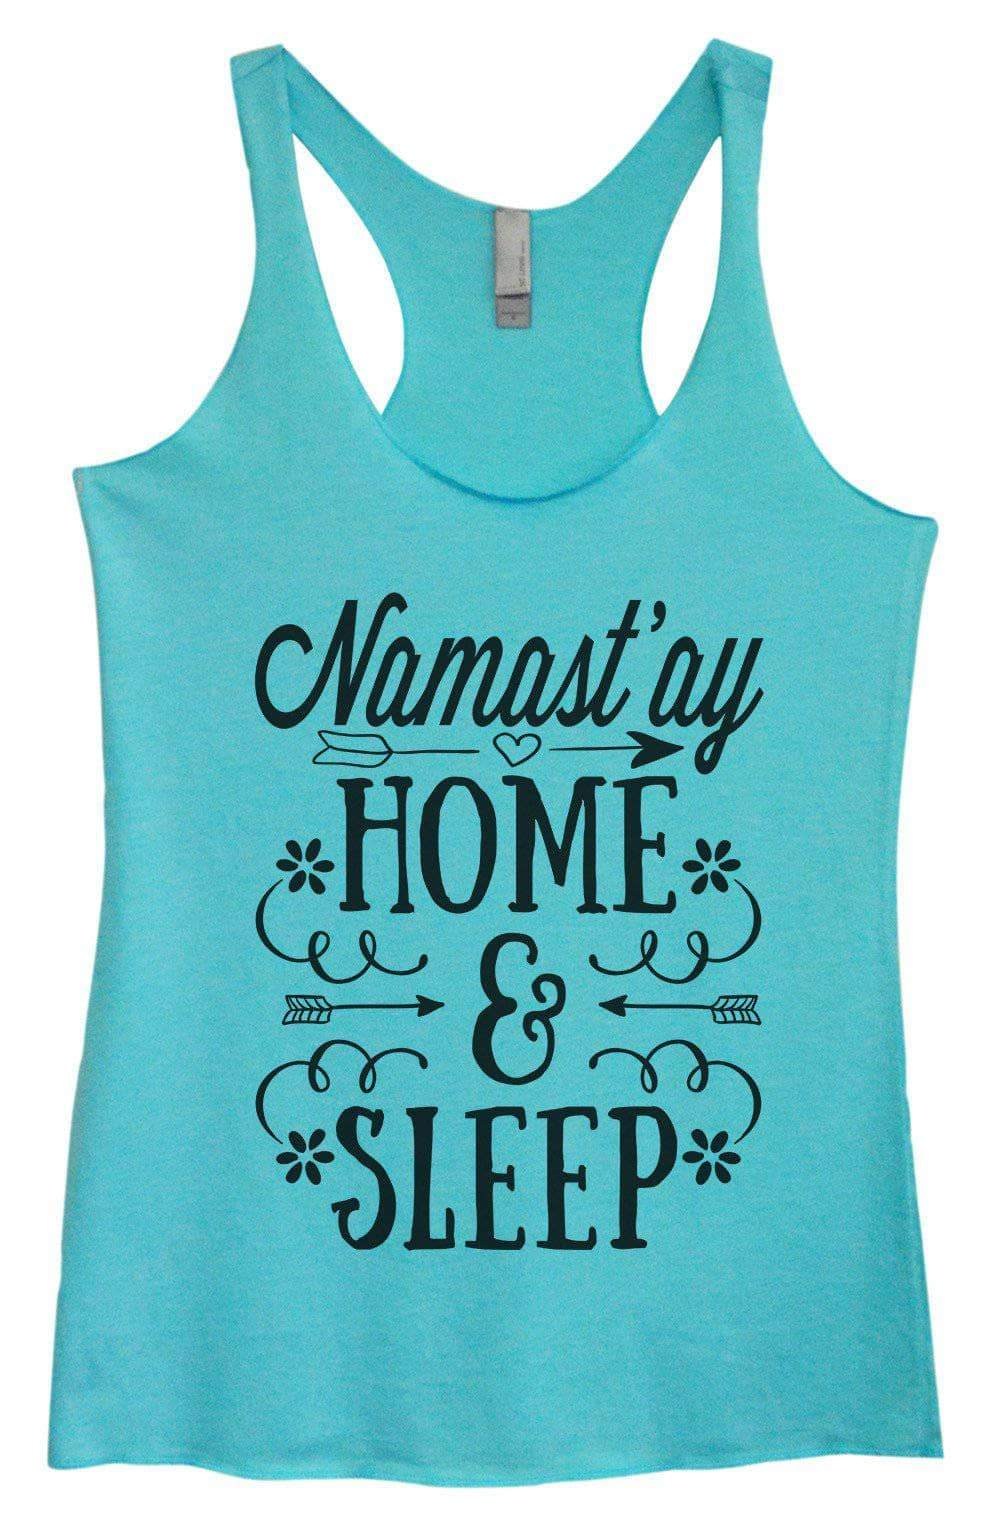 Womens Tri-Blend Tank Top - Namast'Ay Home And Sleep Small Womens Tank Tops Vintage Blue